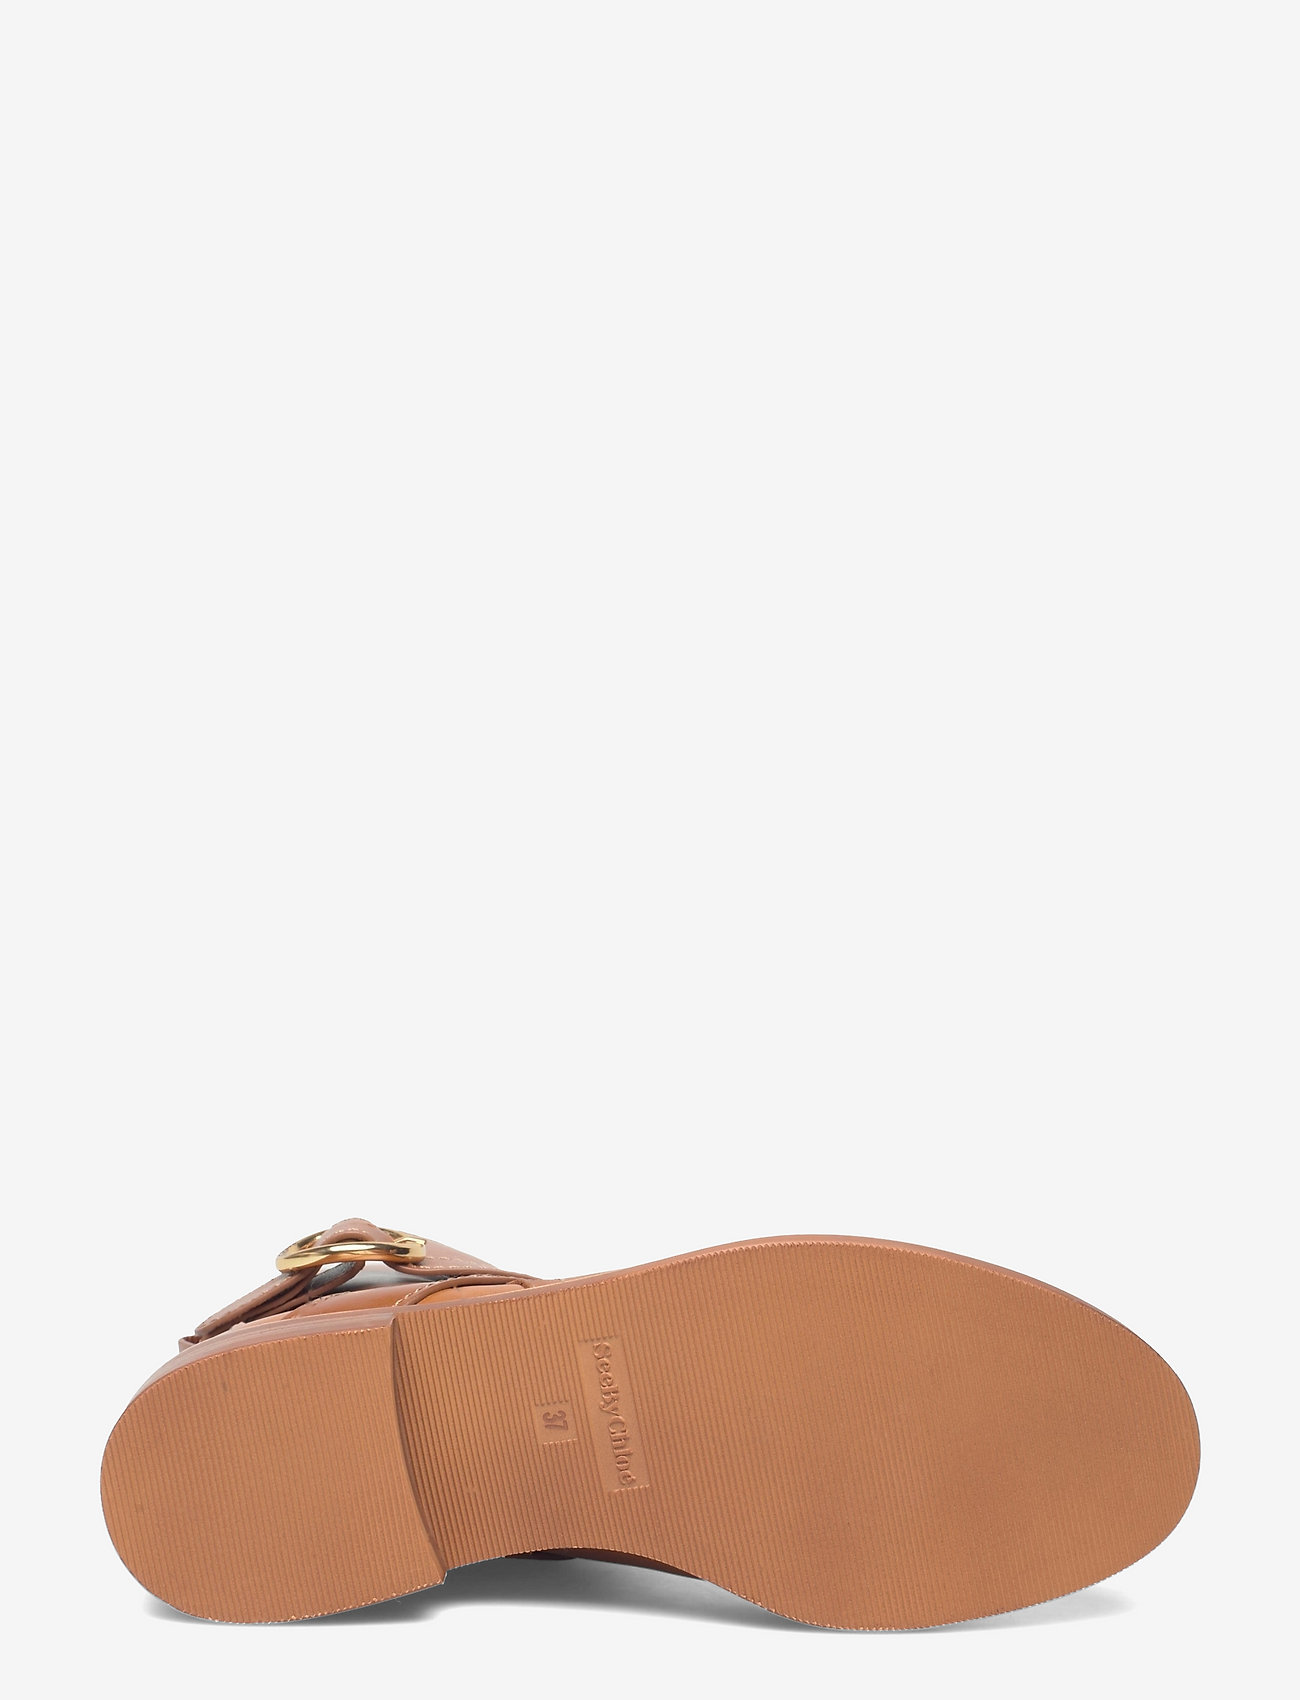 See by Chloé - FLAT ANKLE BOOTS - flate ankelstøvletter - cuoio - 4